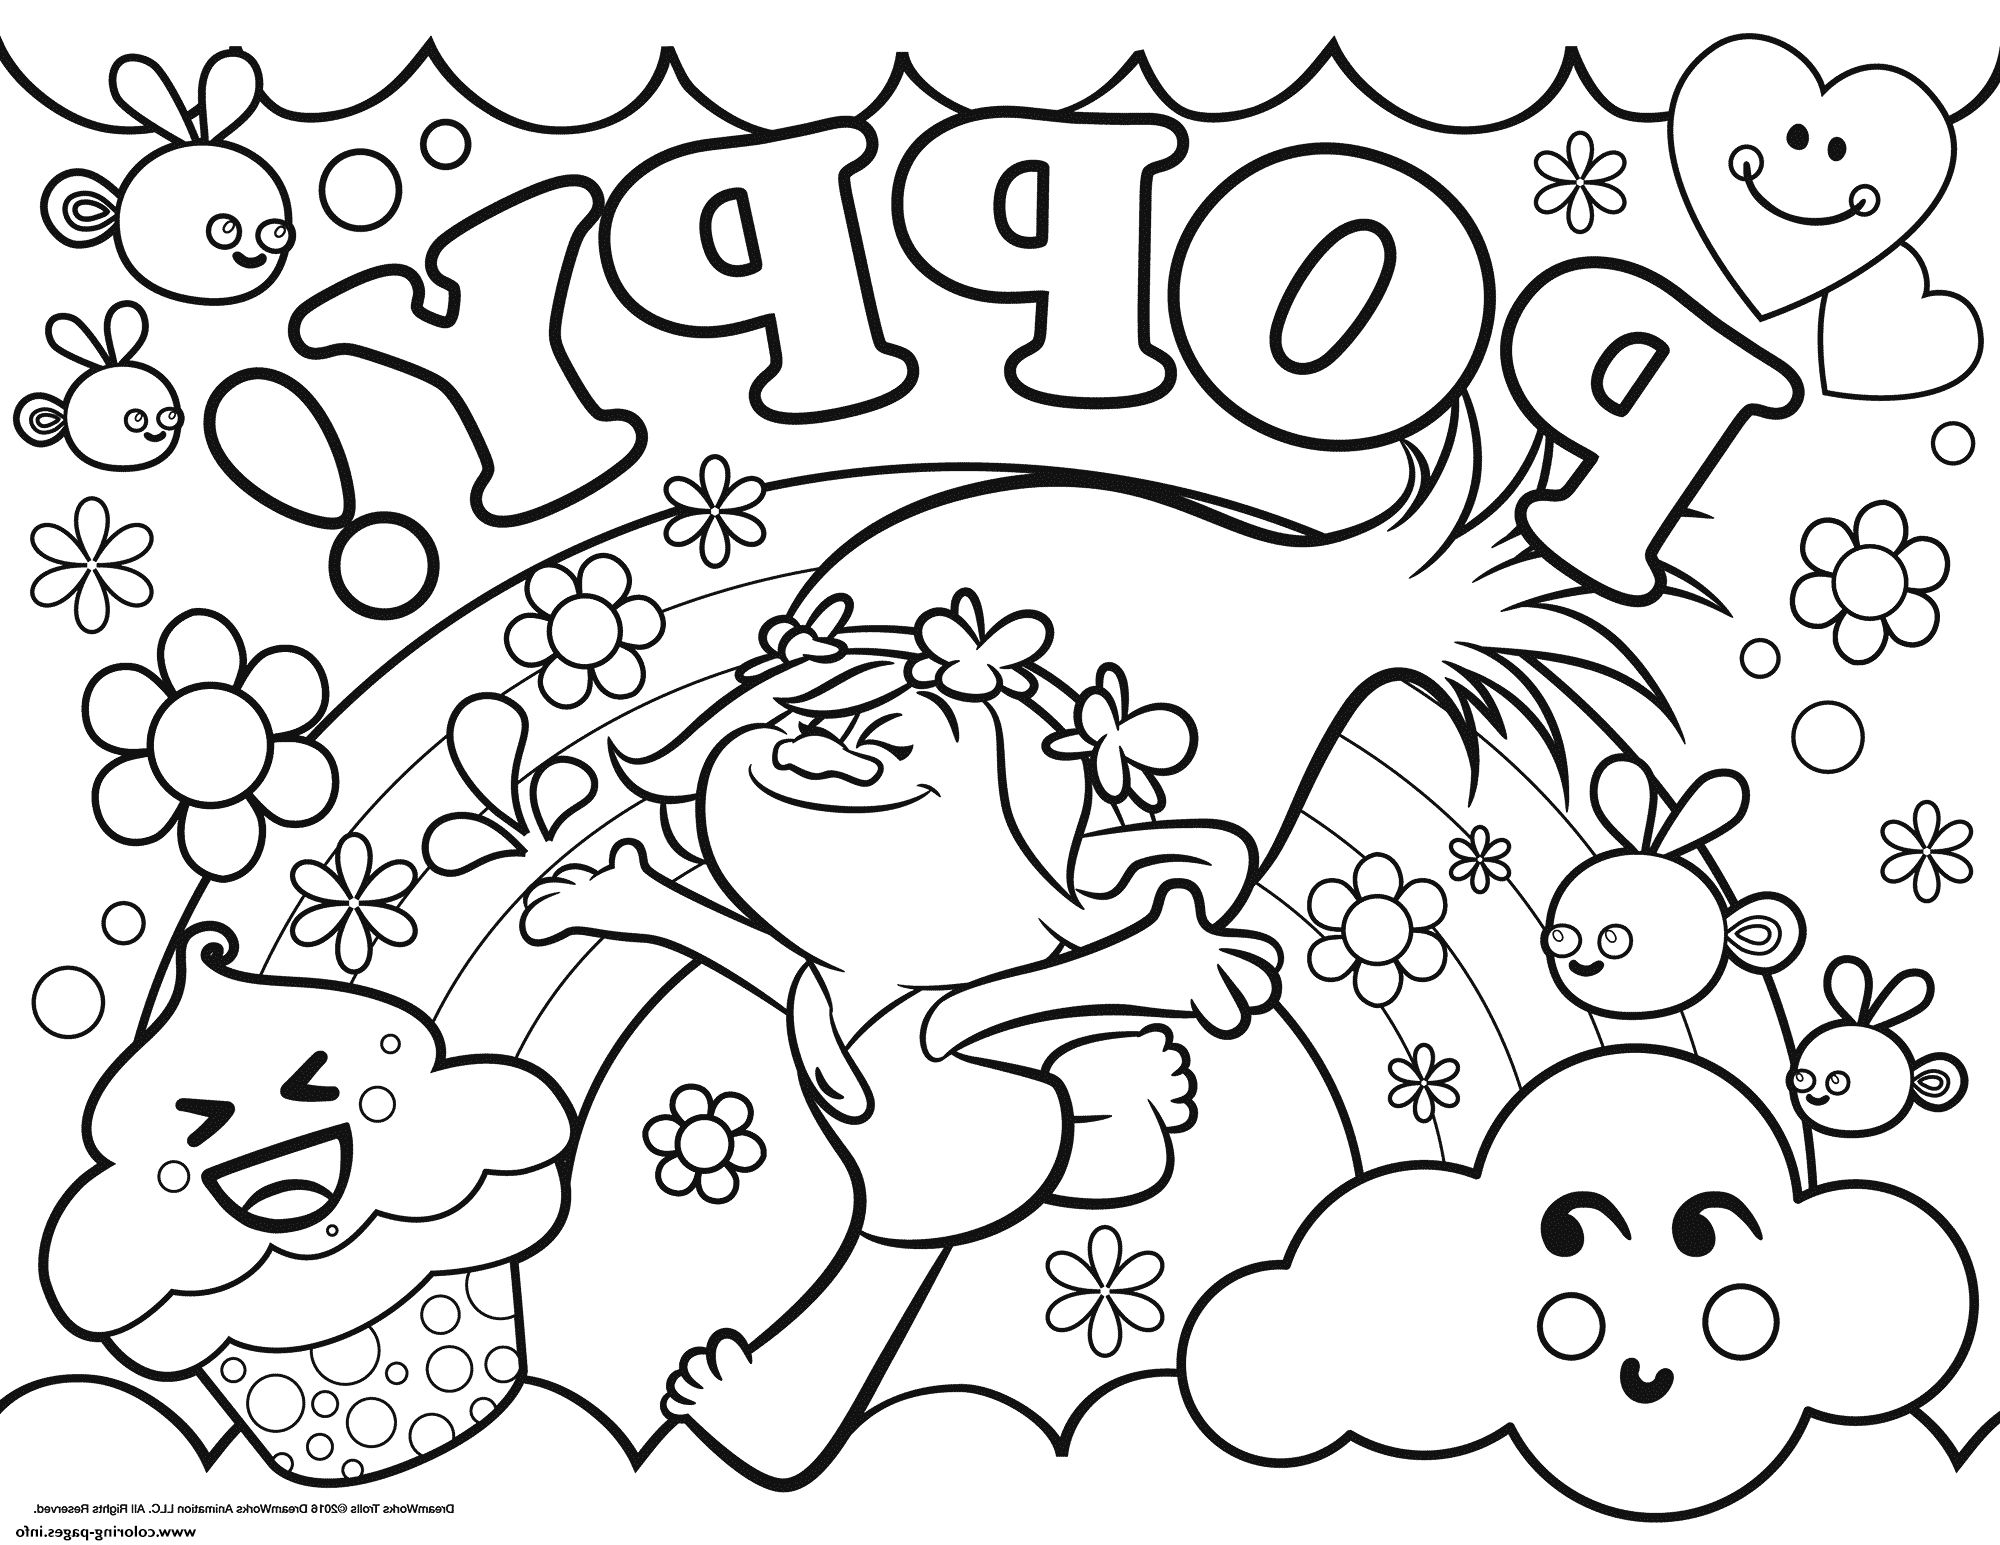 trolls coloring pages poppy - Trolls Coloring Pages